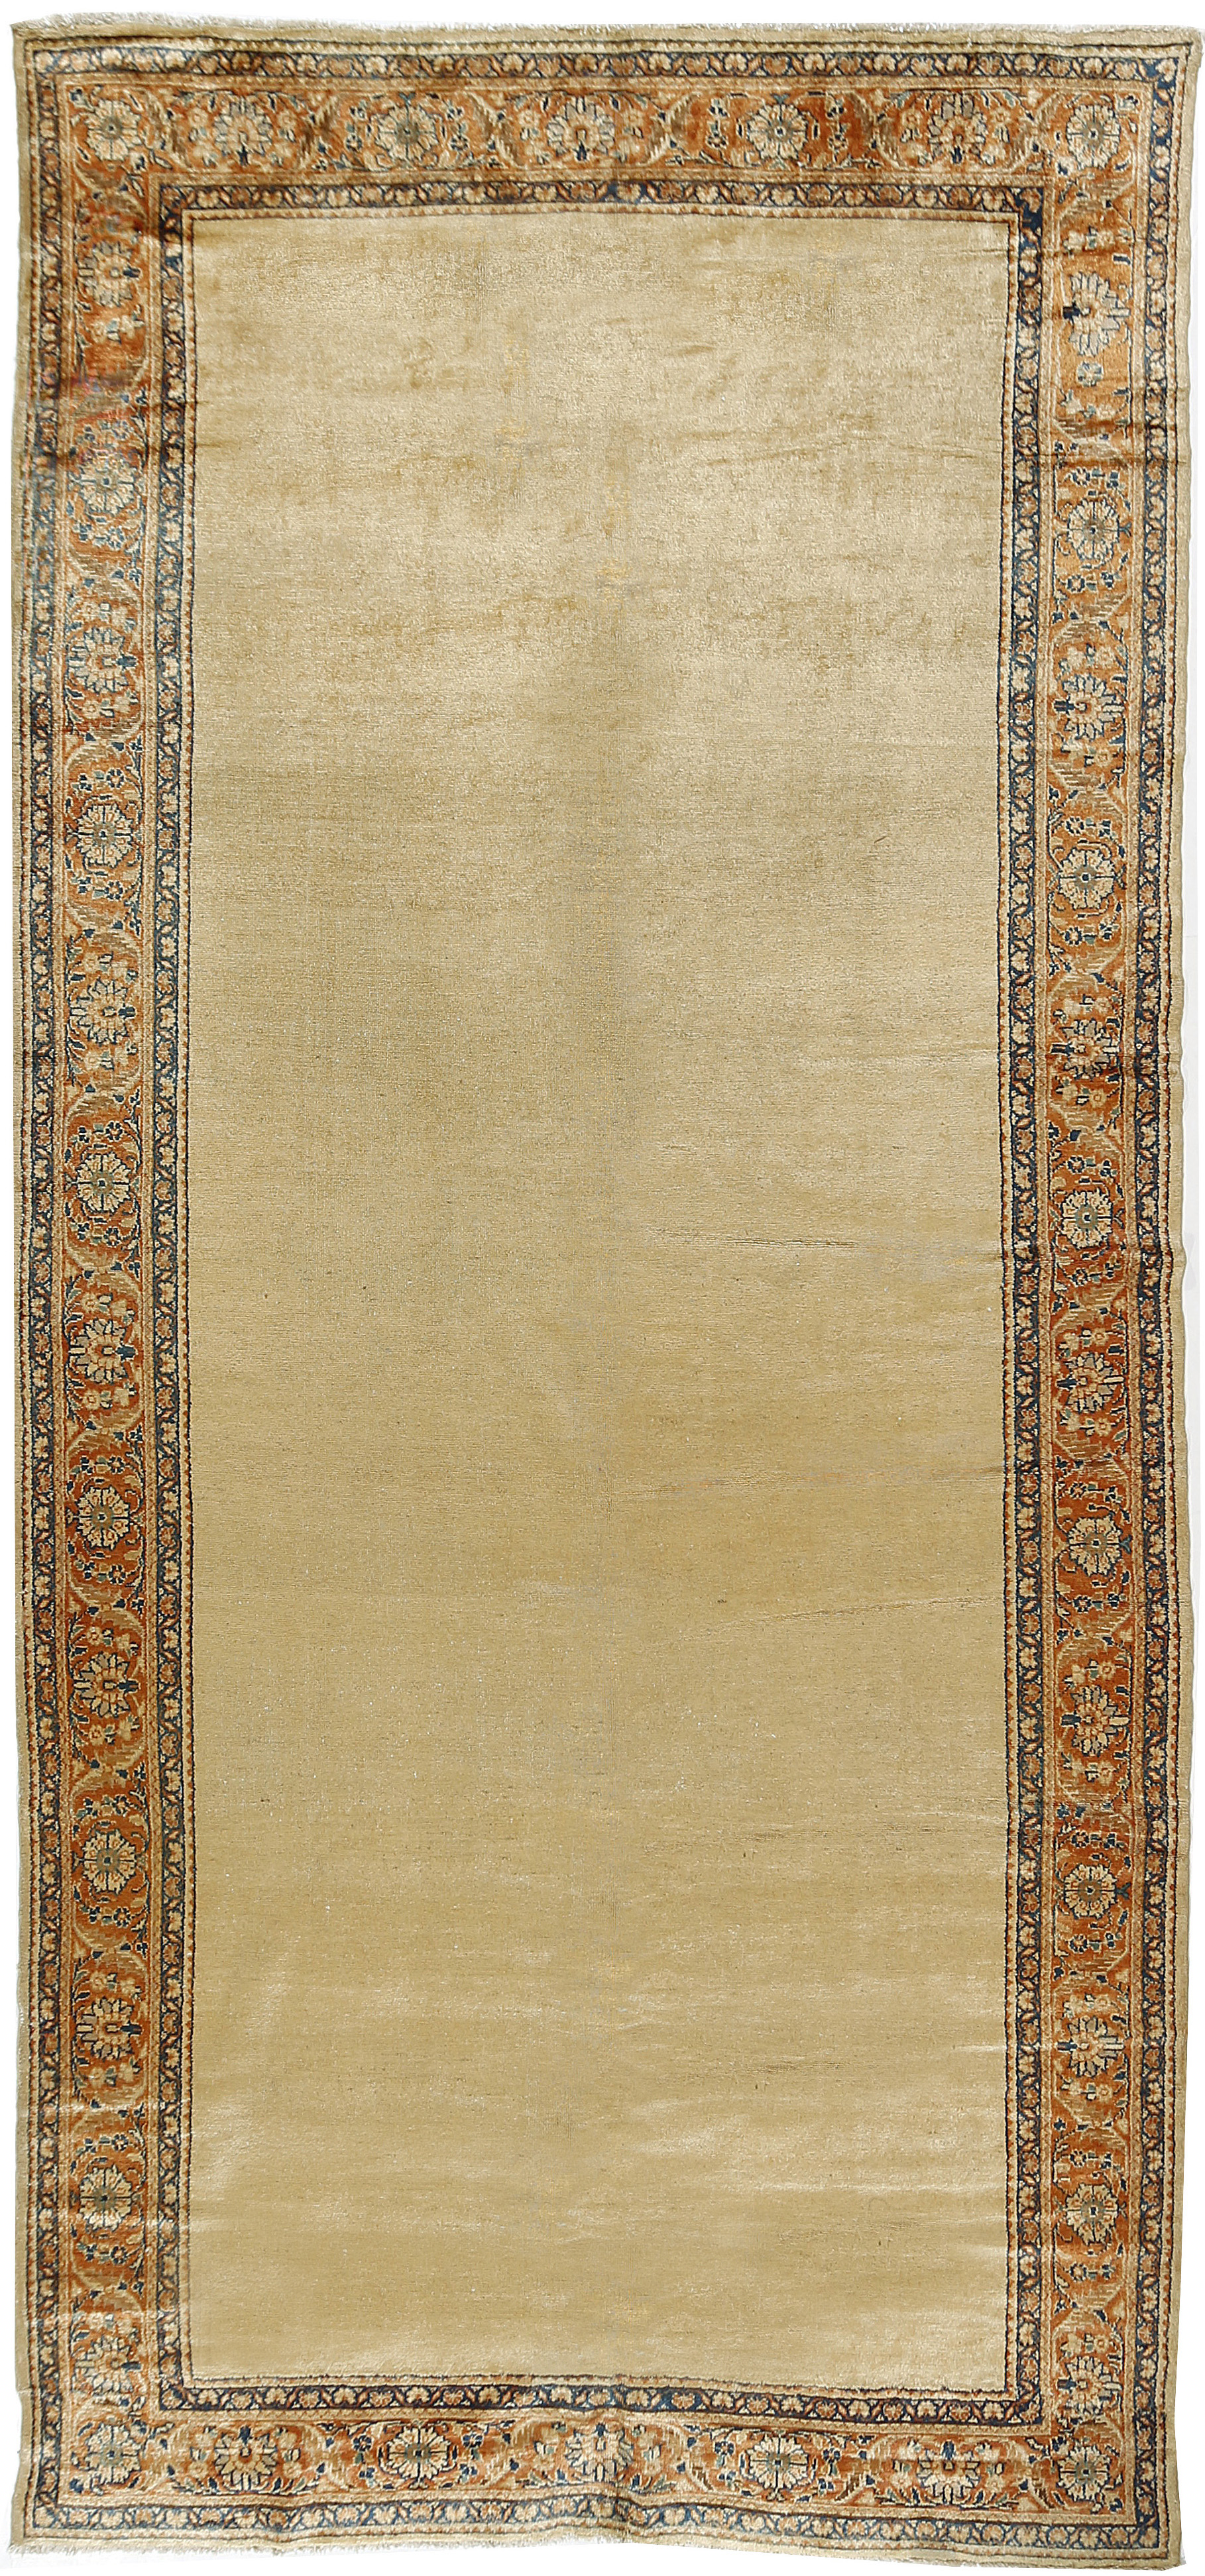 Antique Persian Mahal Gallery Rug